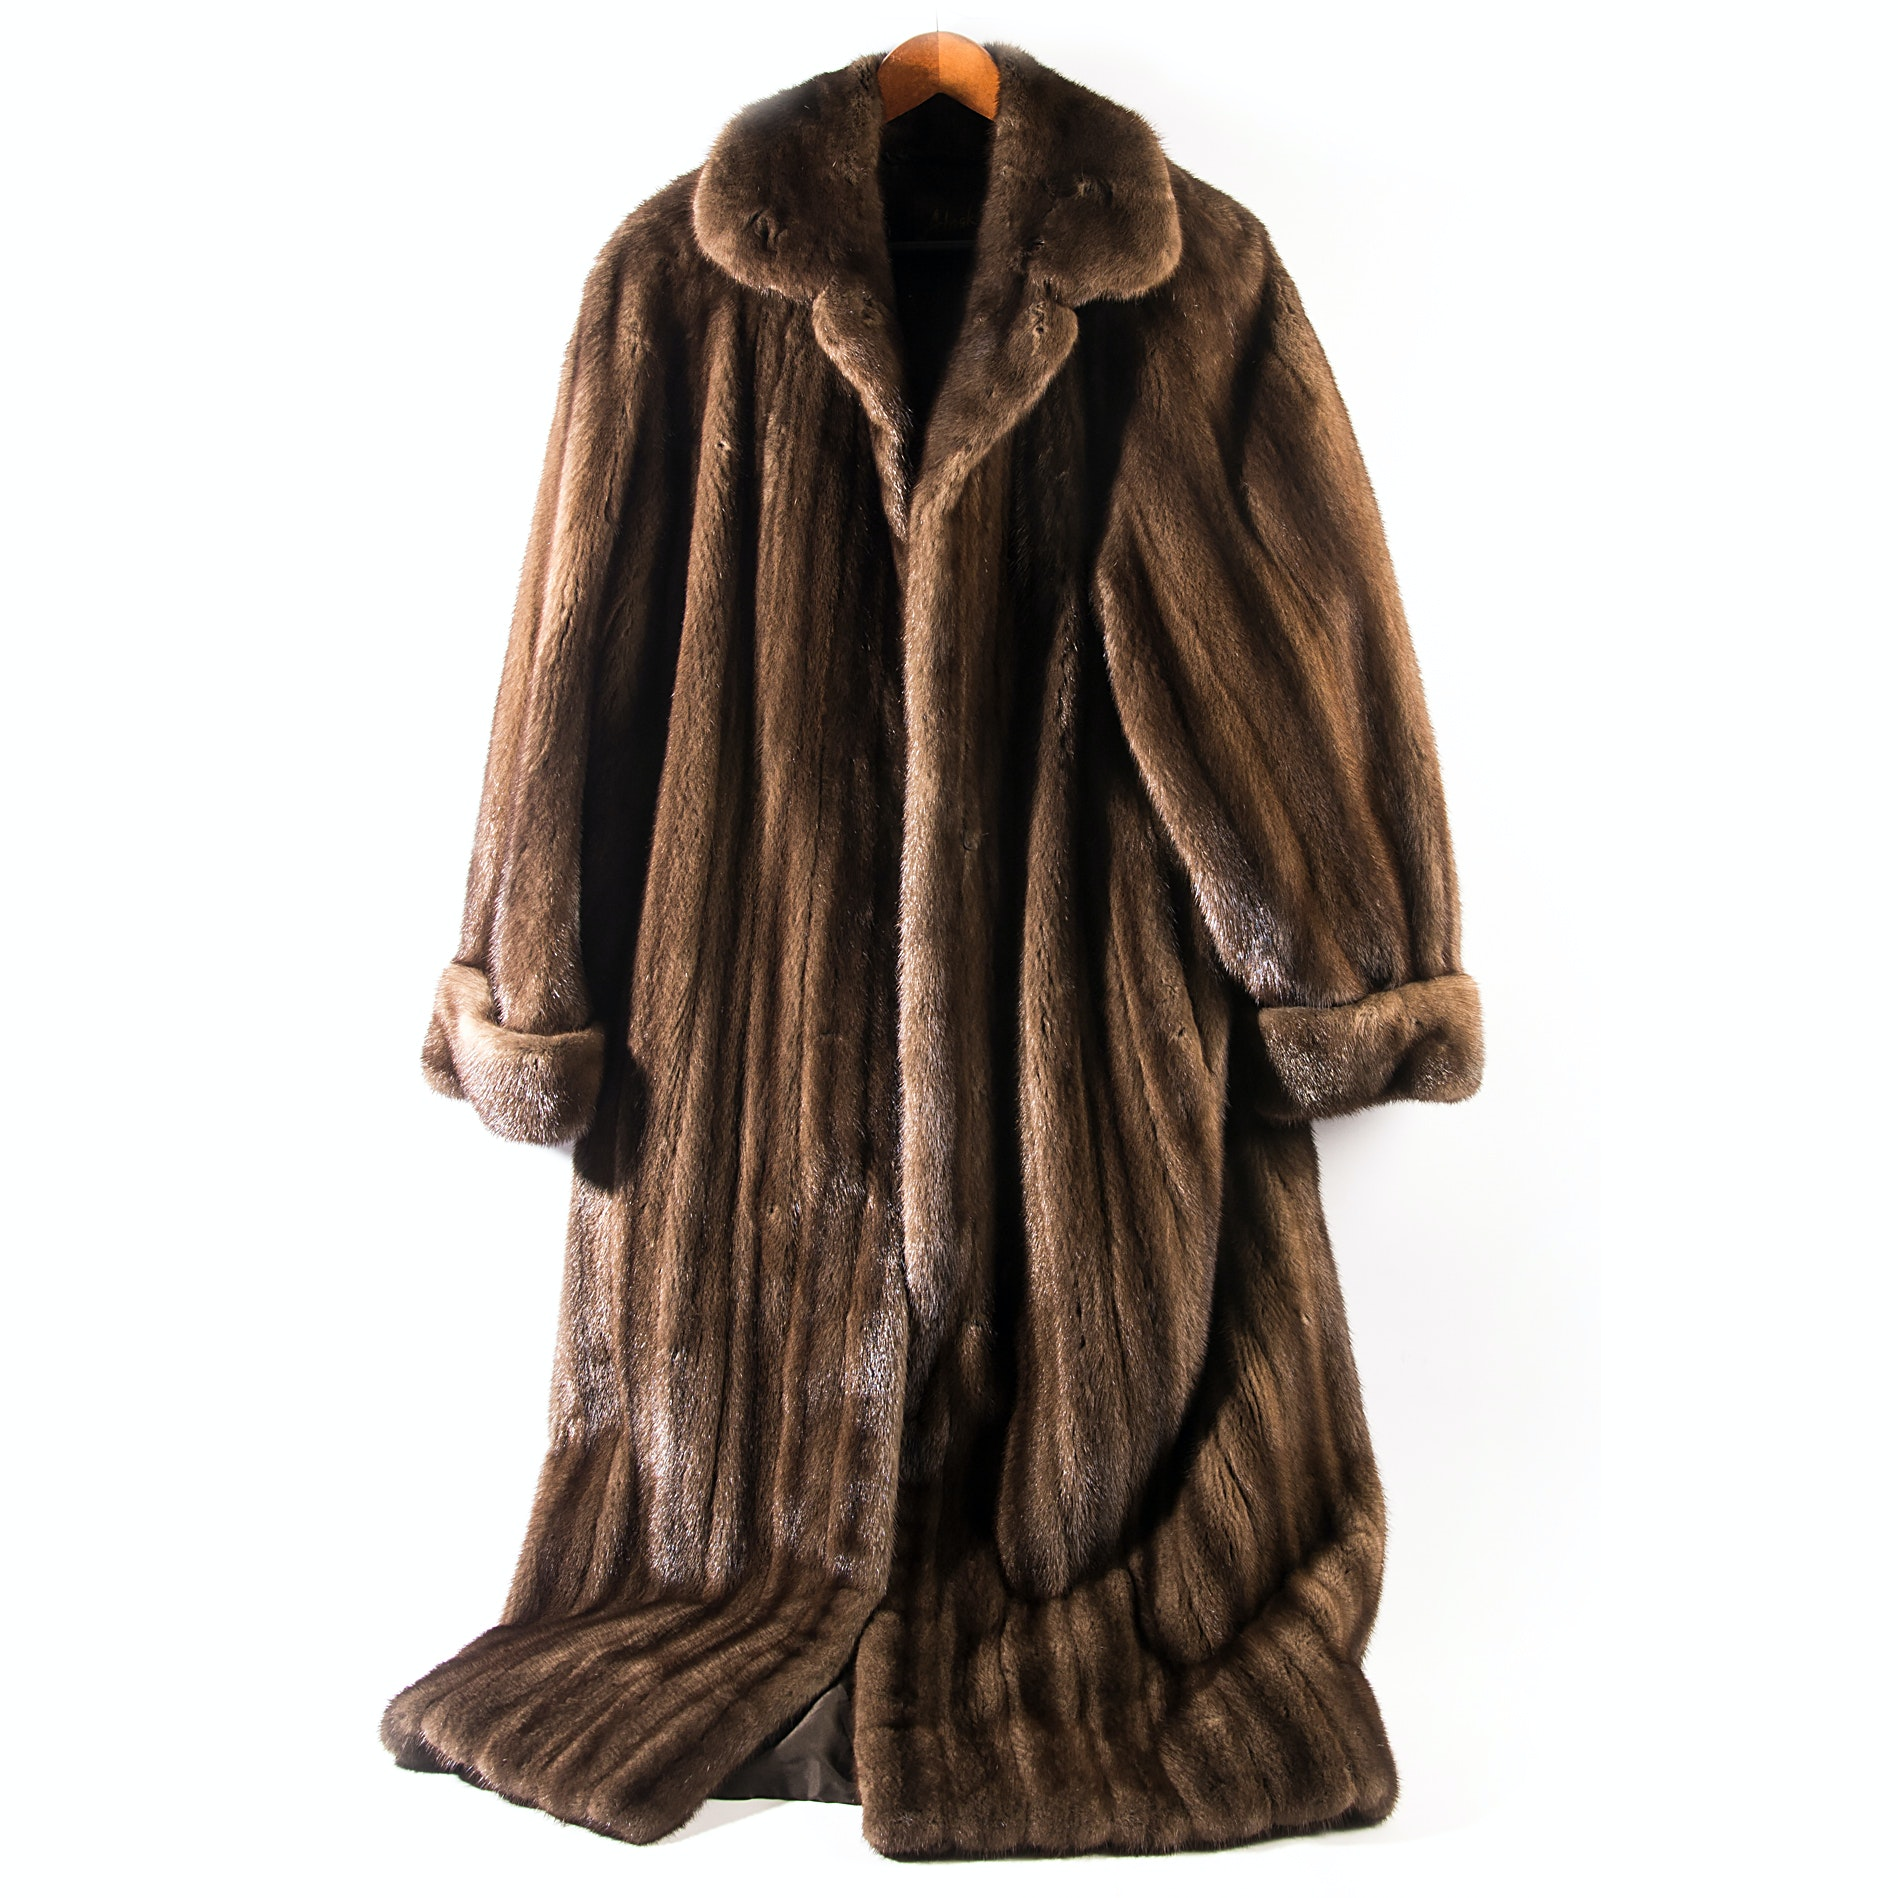 Full-Length Beaver Fur Coat